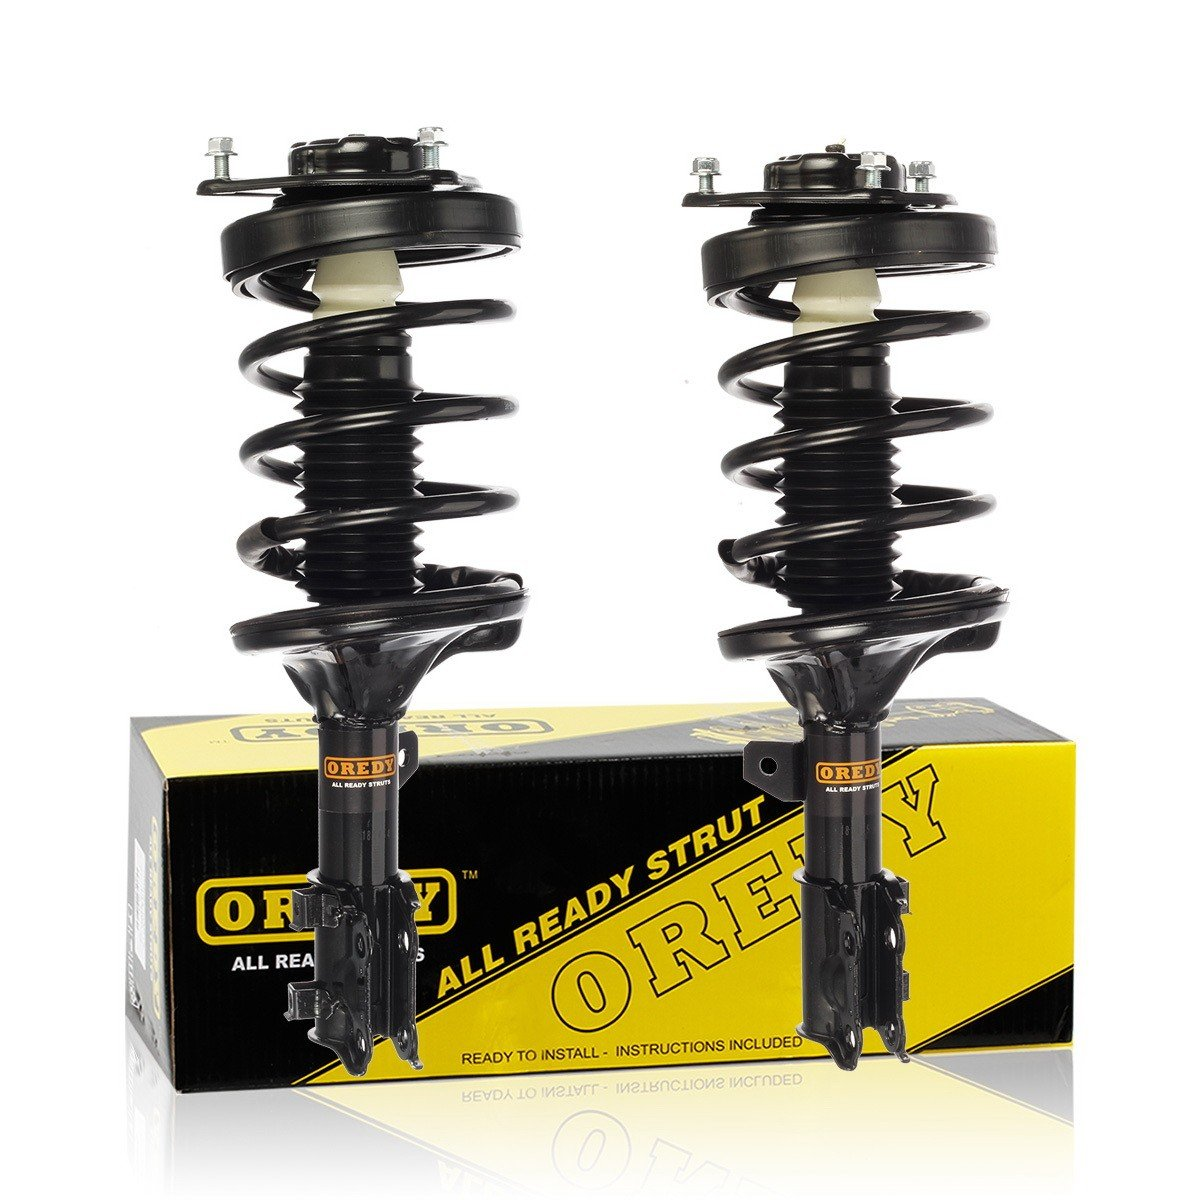 OREDY Front Left /& Right 2 Pieces Complete Shock Strut Coil Springs Assembly Kit 11112 11111 XS846147621 XS846147722 Compatible with 2003 2004 2005 2006 2007 2008 Tiburon Coupe FWD